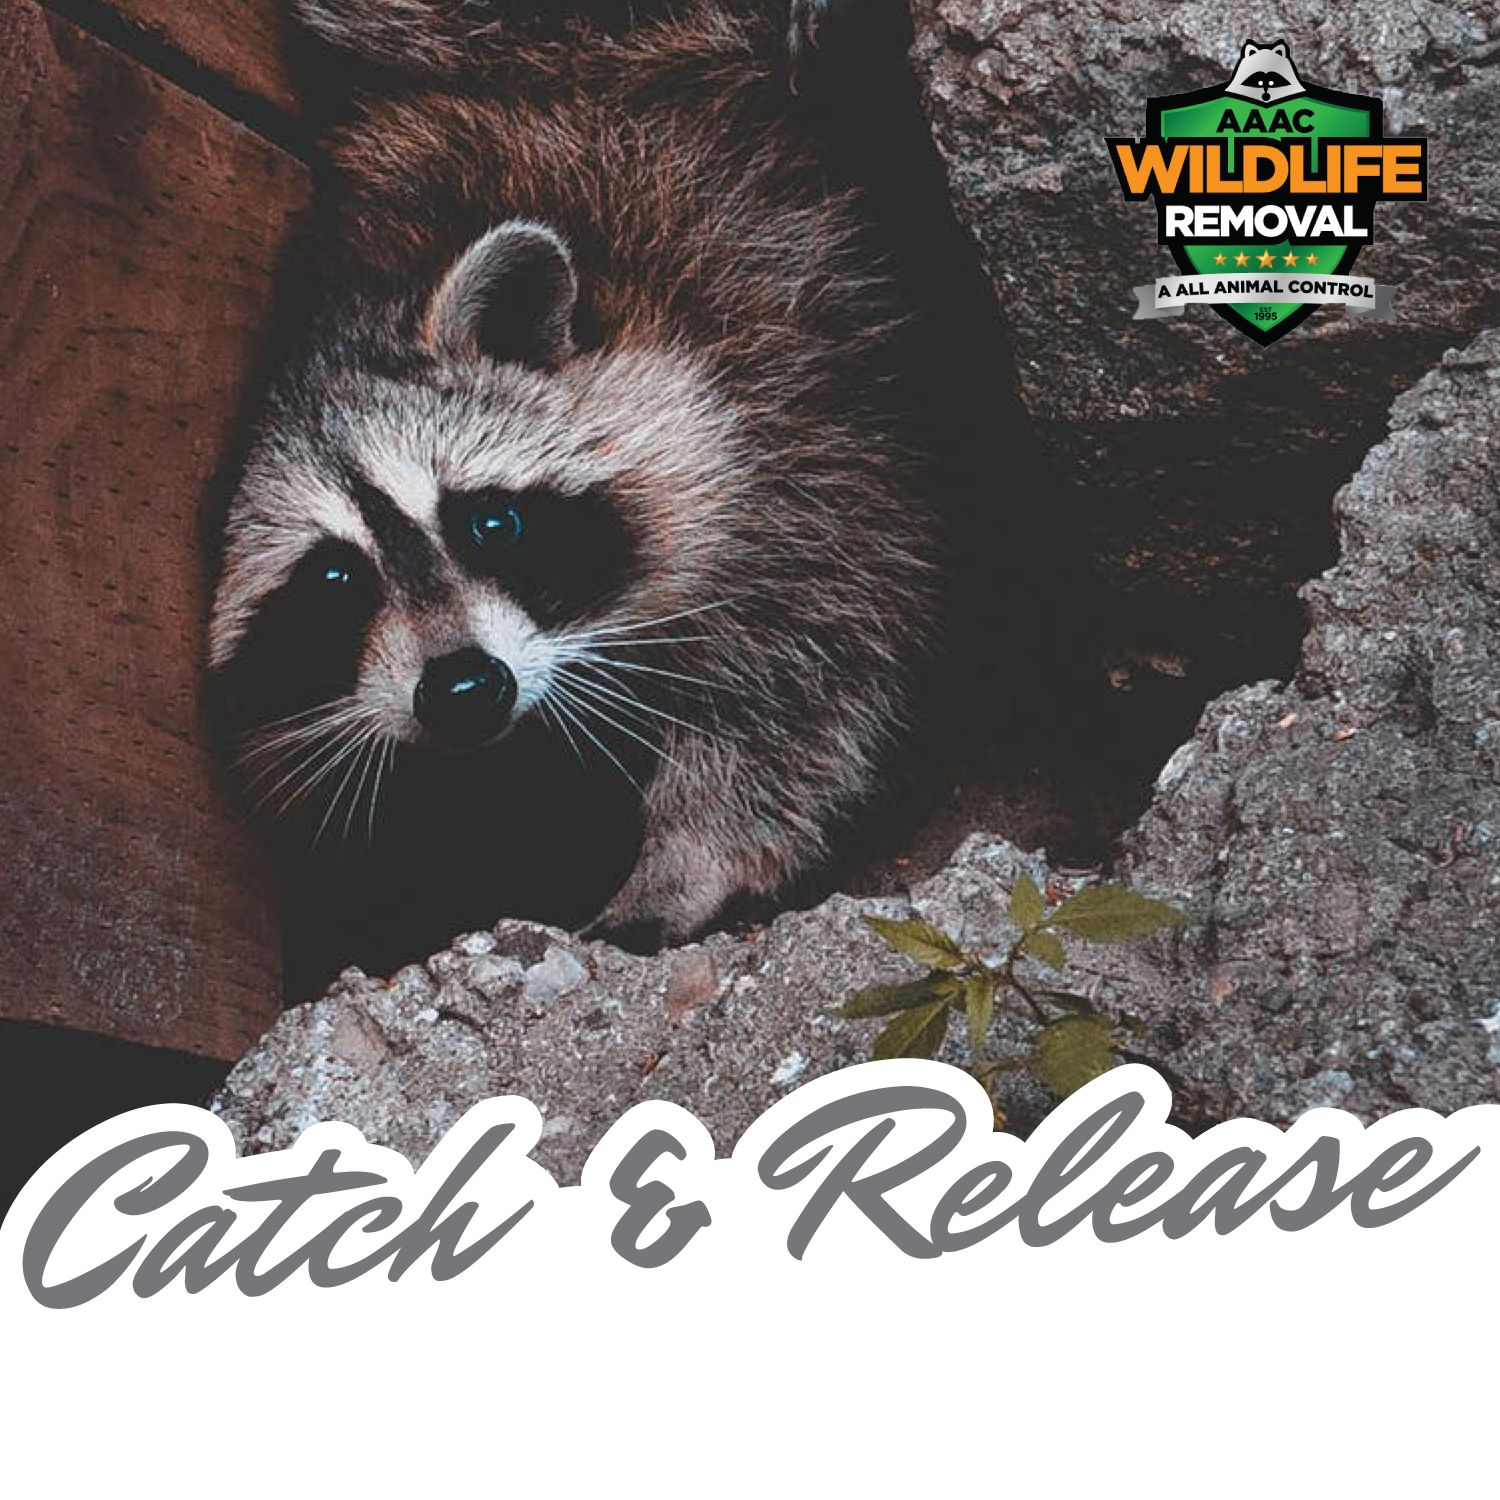 Aaac Wildlife Removal Of Madison Technicians Are Trained And Equipped To Clean Up All Waste Hazardous Waste Guano Droppings Animal Control Wildlife Madison